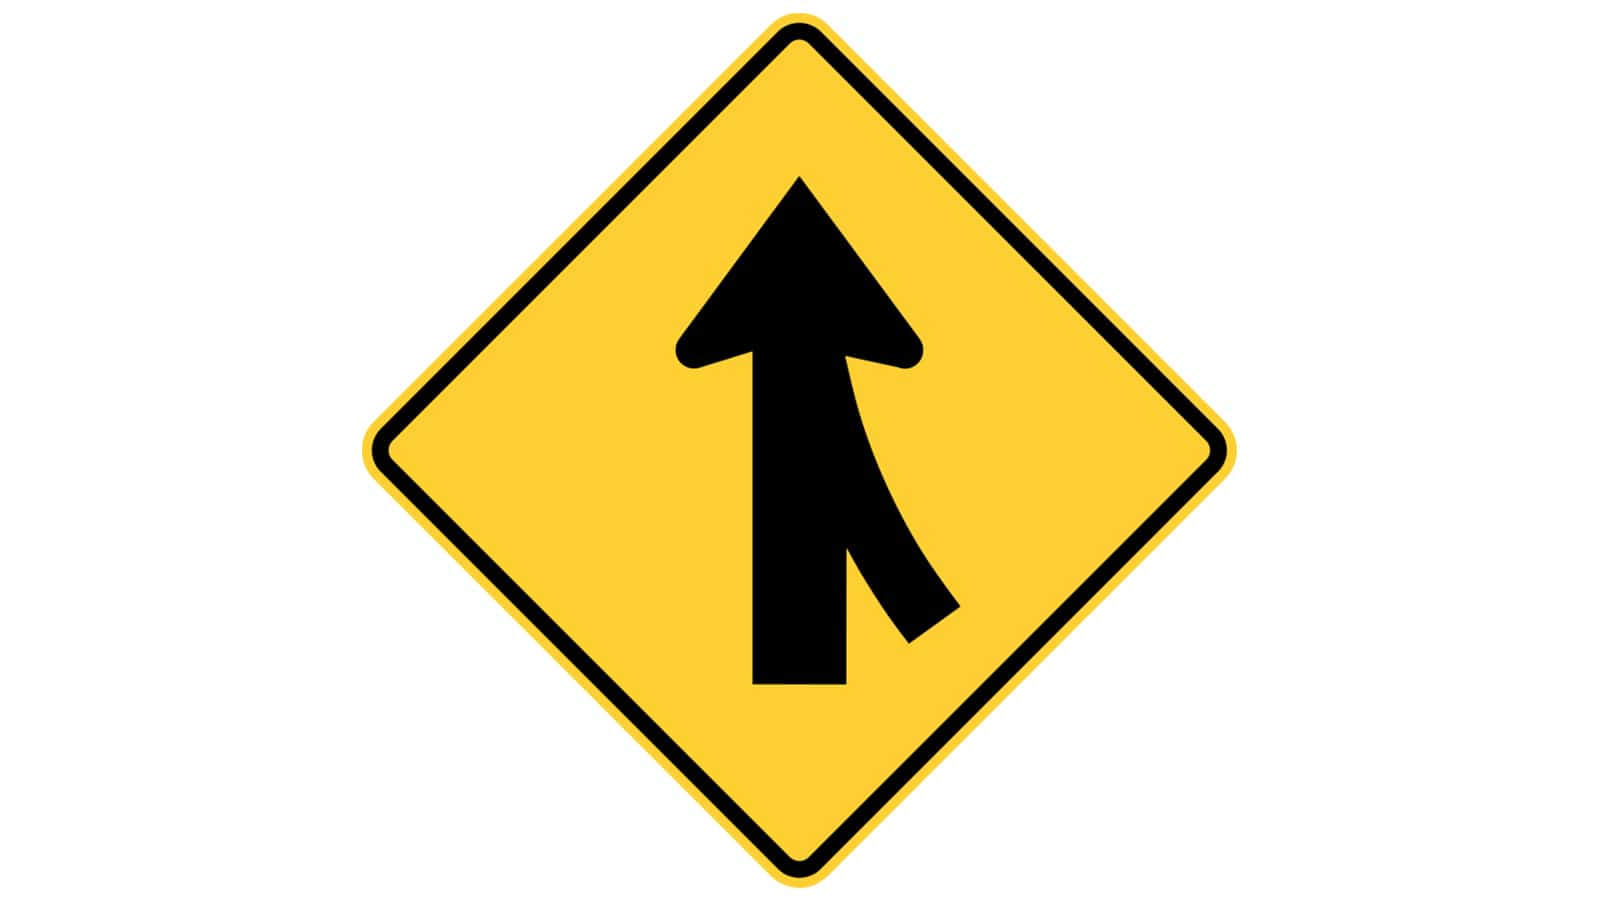 warning sign merge (right)